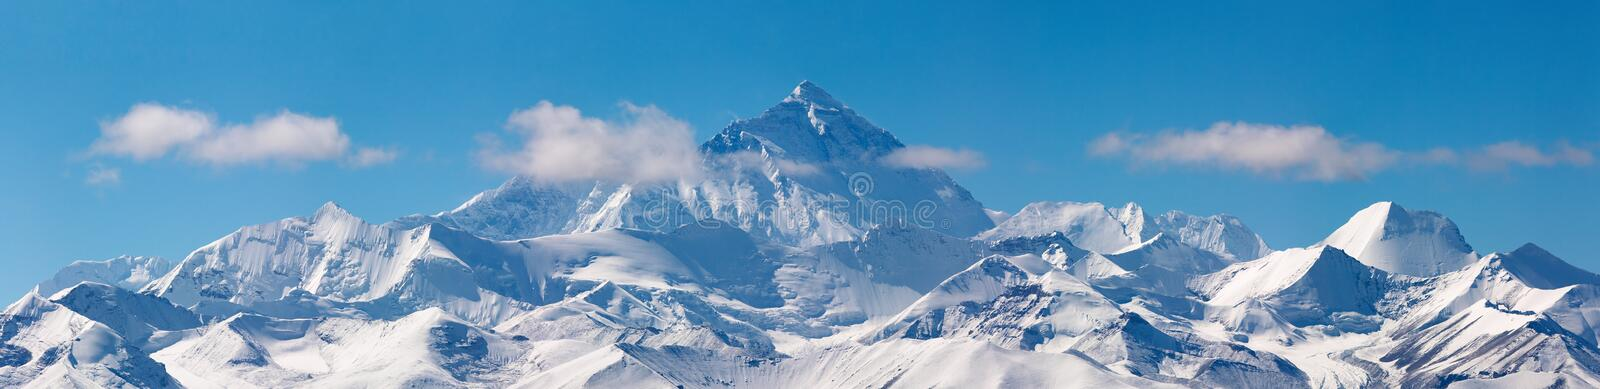 Mount Everest stock images